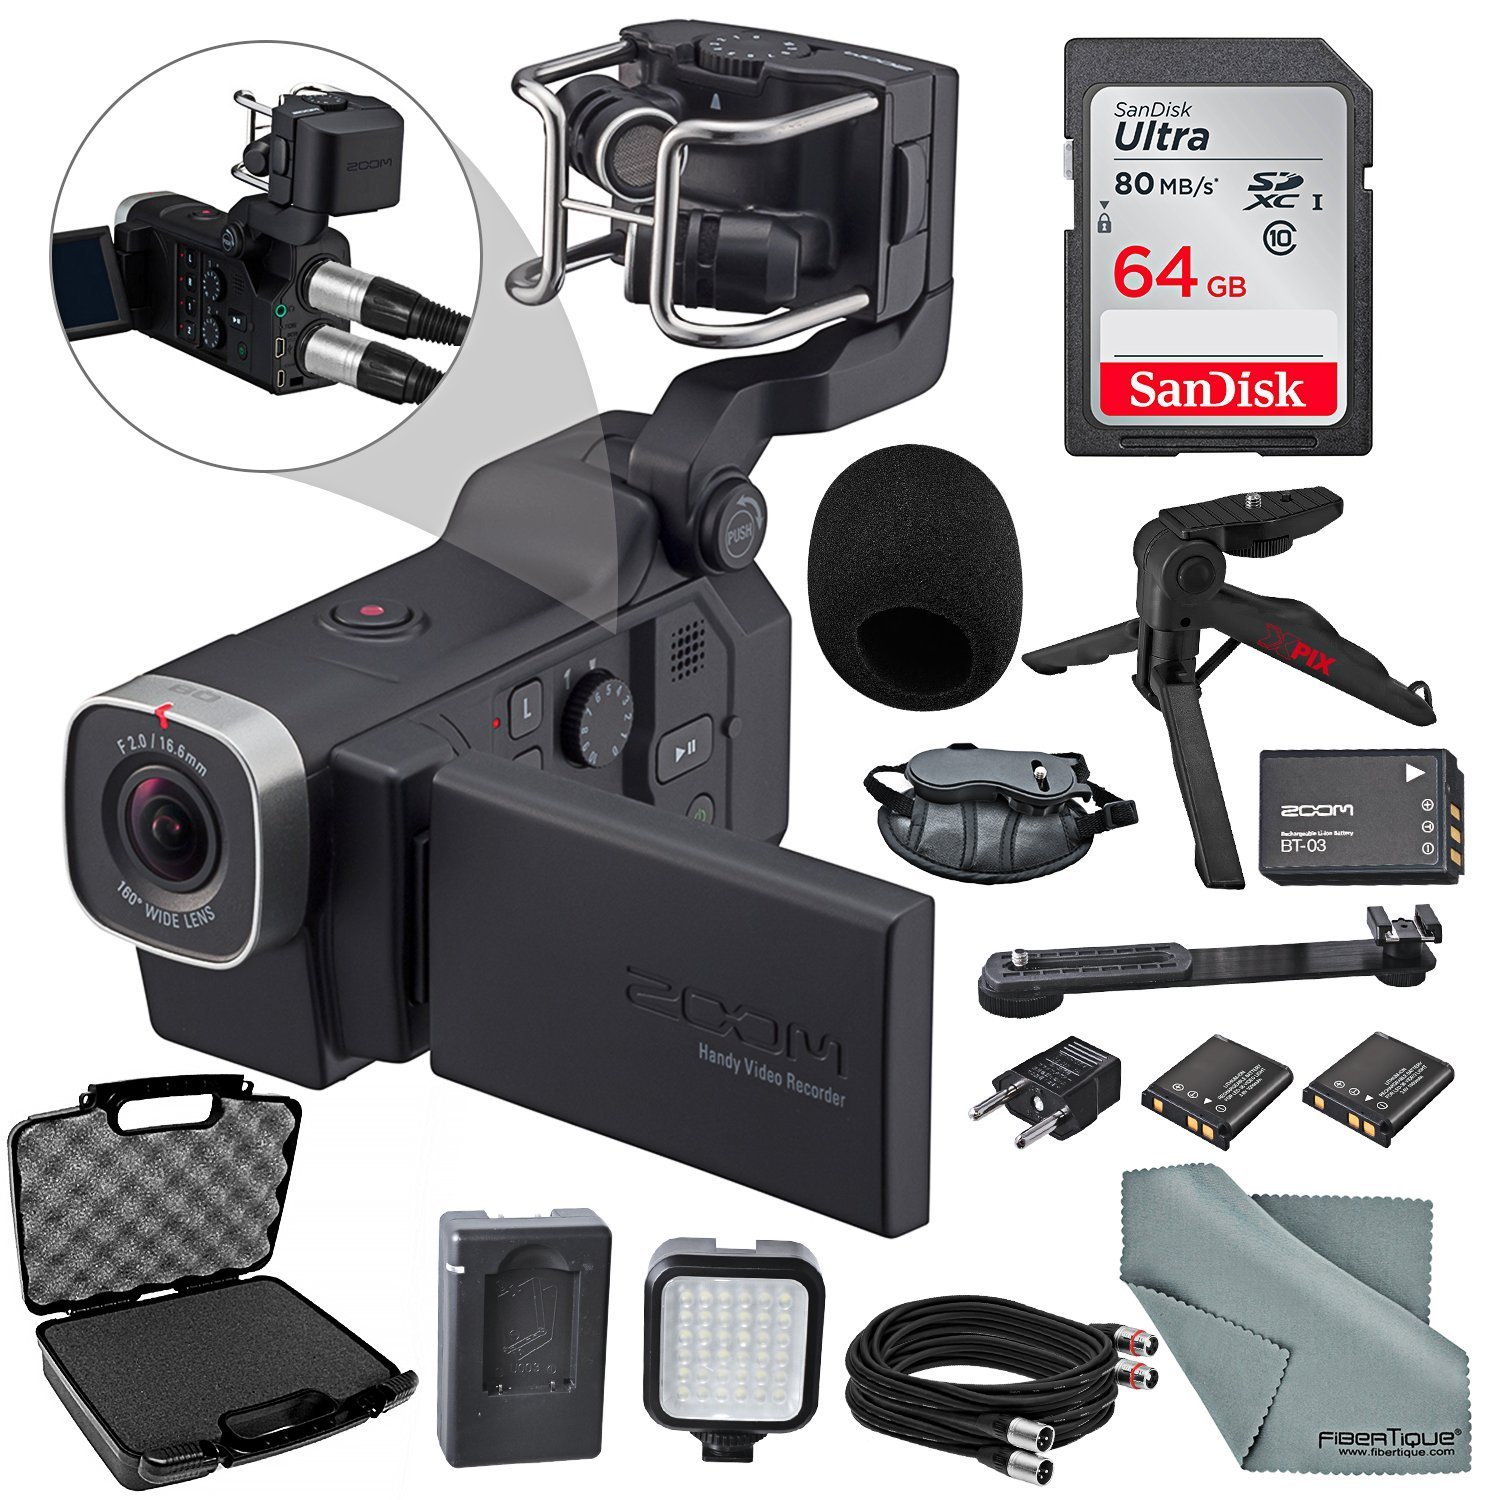 Zoom Q8 Handy Video Recorder Deluxe Accessory Bundle with LED Light Kit + Case + 64GB + Cables + XPIX Tripod & Fibertique Cloth